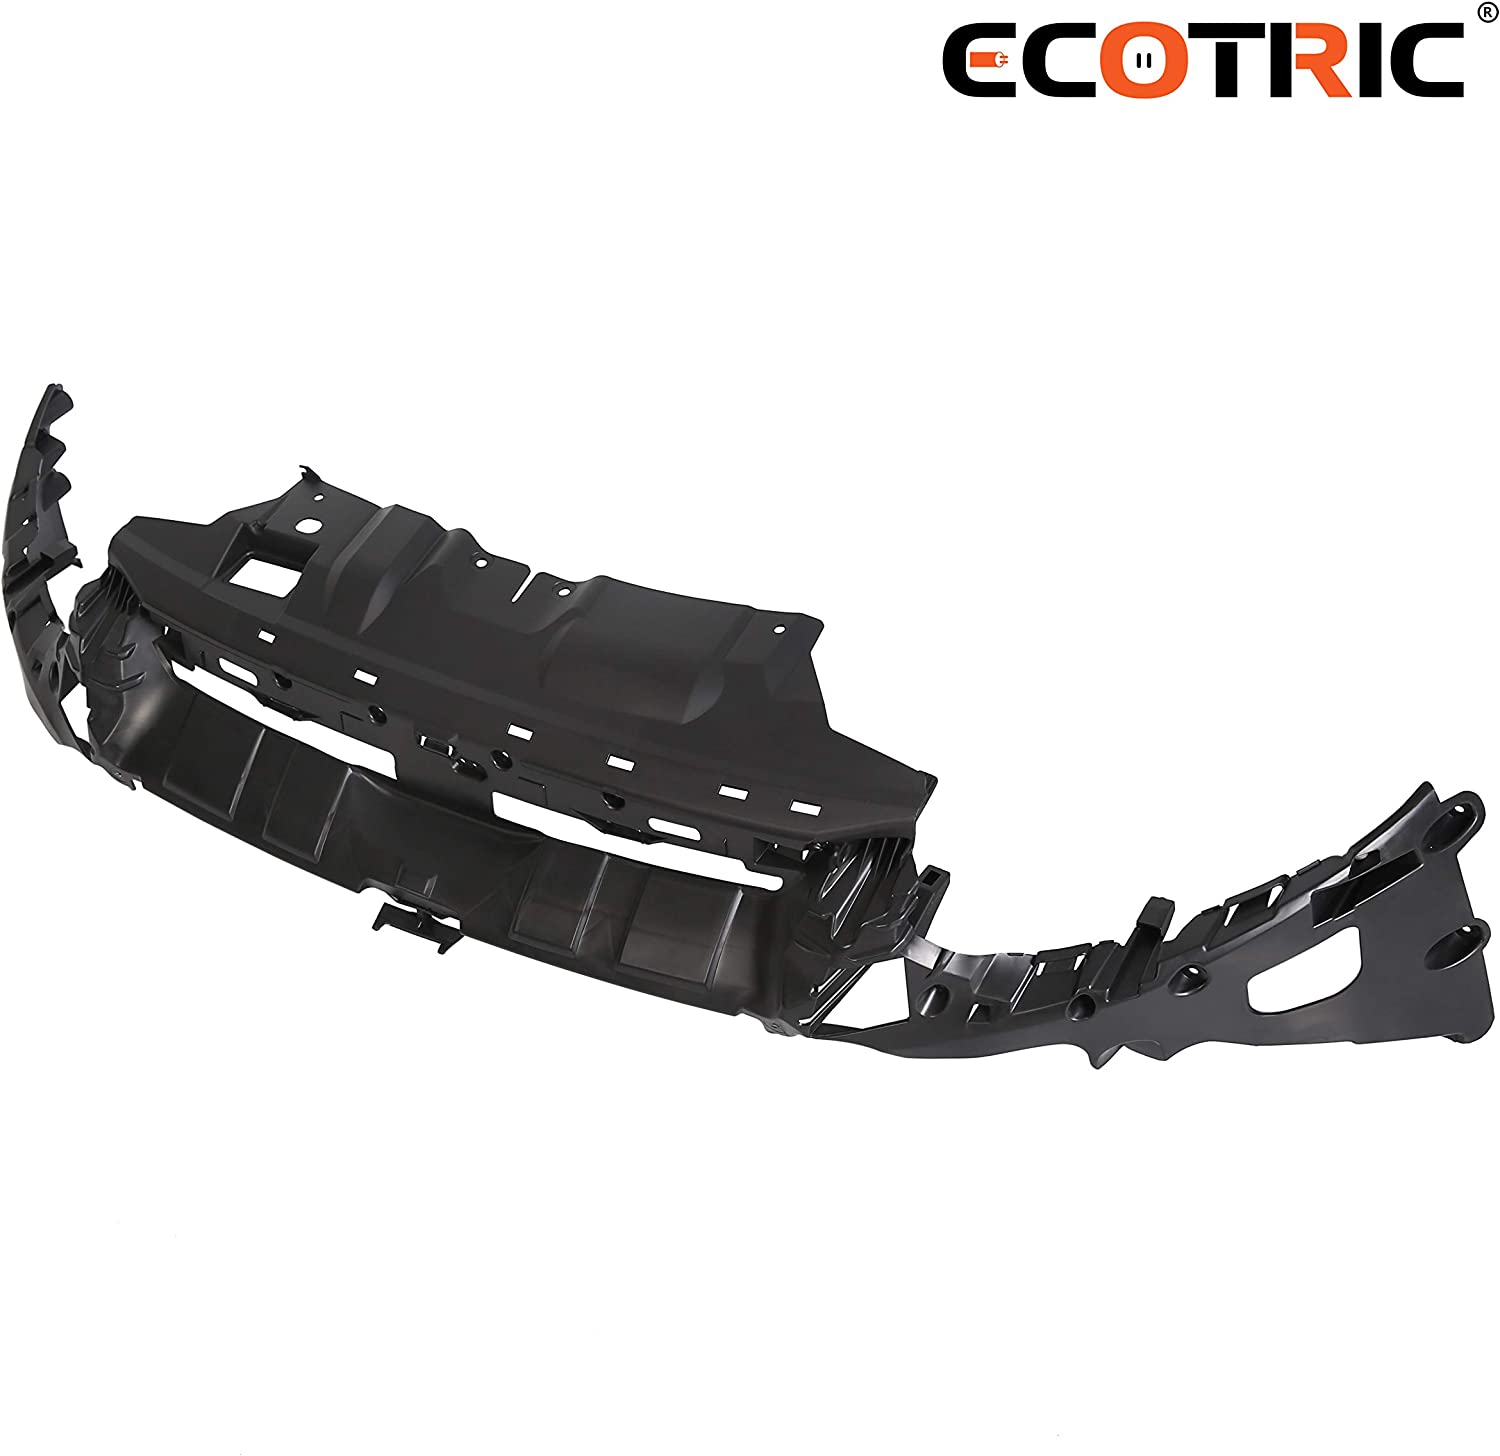 ECOTRIC New Front Upper Bumper Bracket Mounting Cover Support for 2012 2013 2014 Ford Focus| Replaces Part# FO1065105 CP9Z17C897A